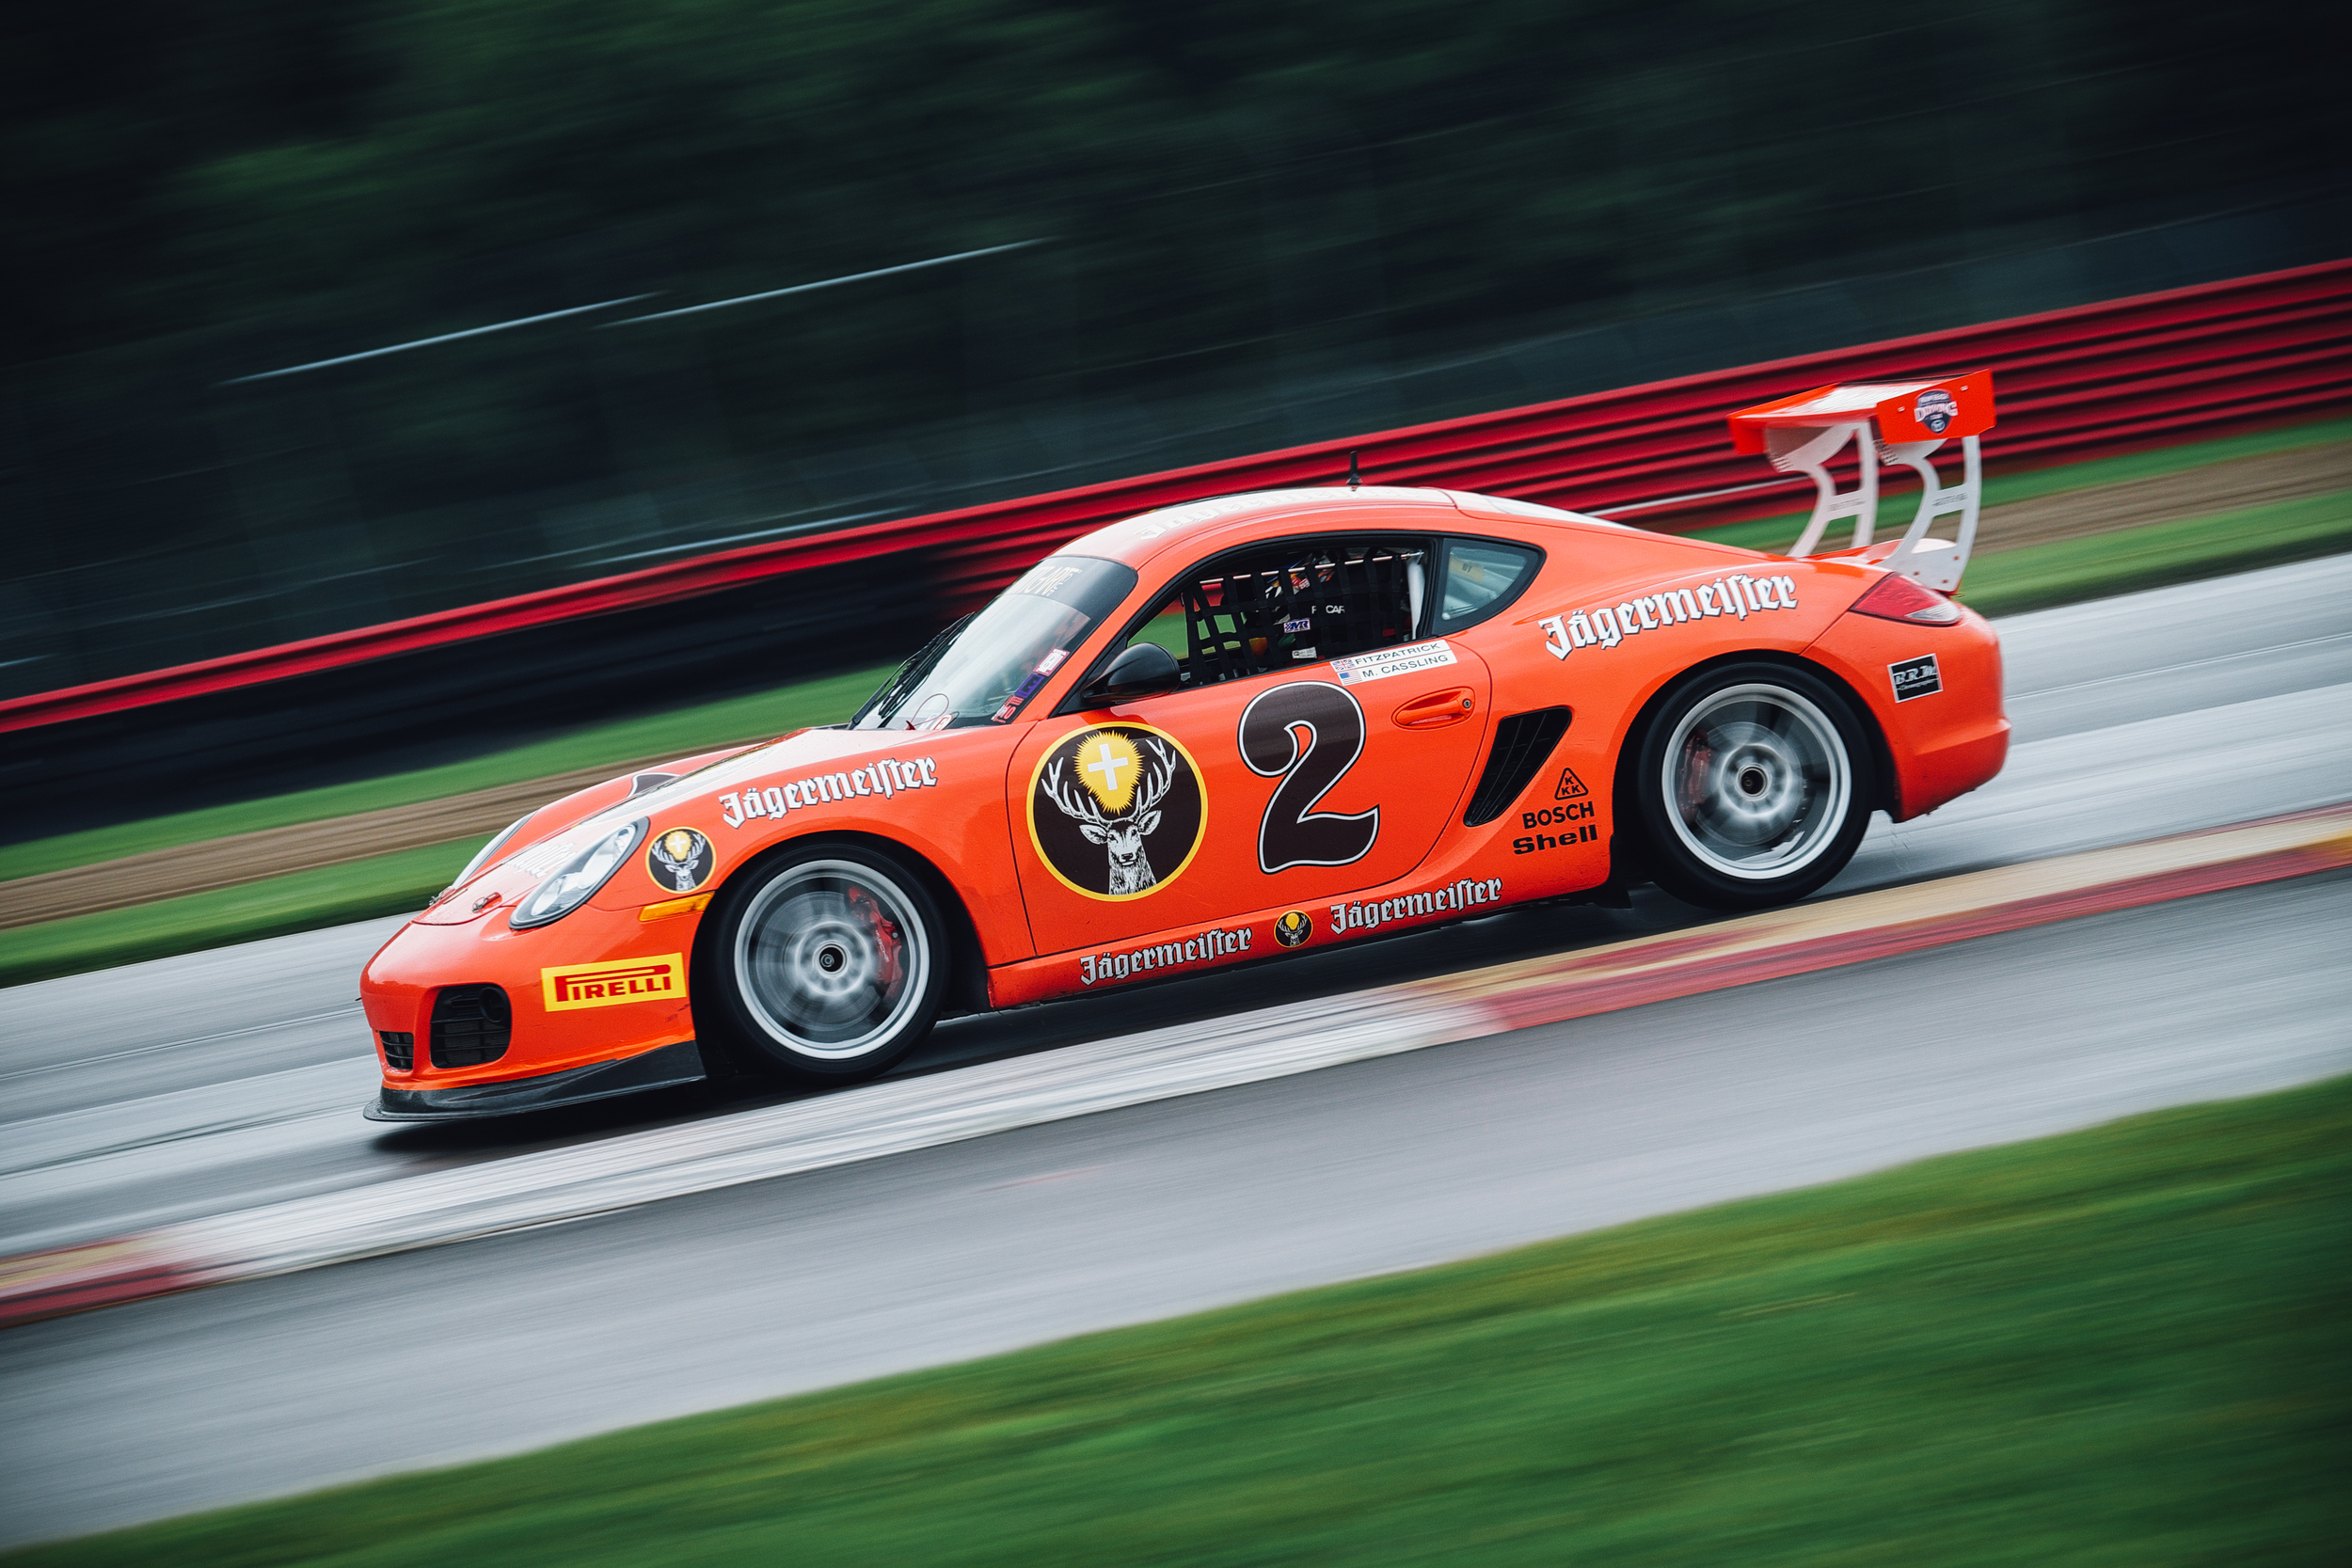 The Porsche racing was particularly awesome this year during the Stuttgart Cup.  Gear & Specs: Fuji X-T1 - Fujinon XF 50-140mm F2.8 R LM OIS WR - 1/60 f5.6 ISO 250